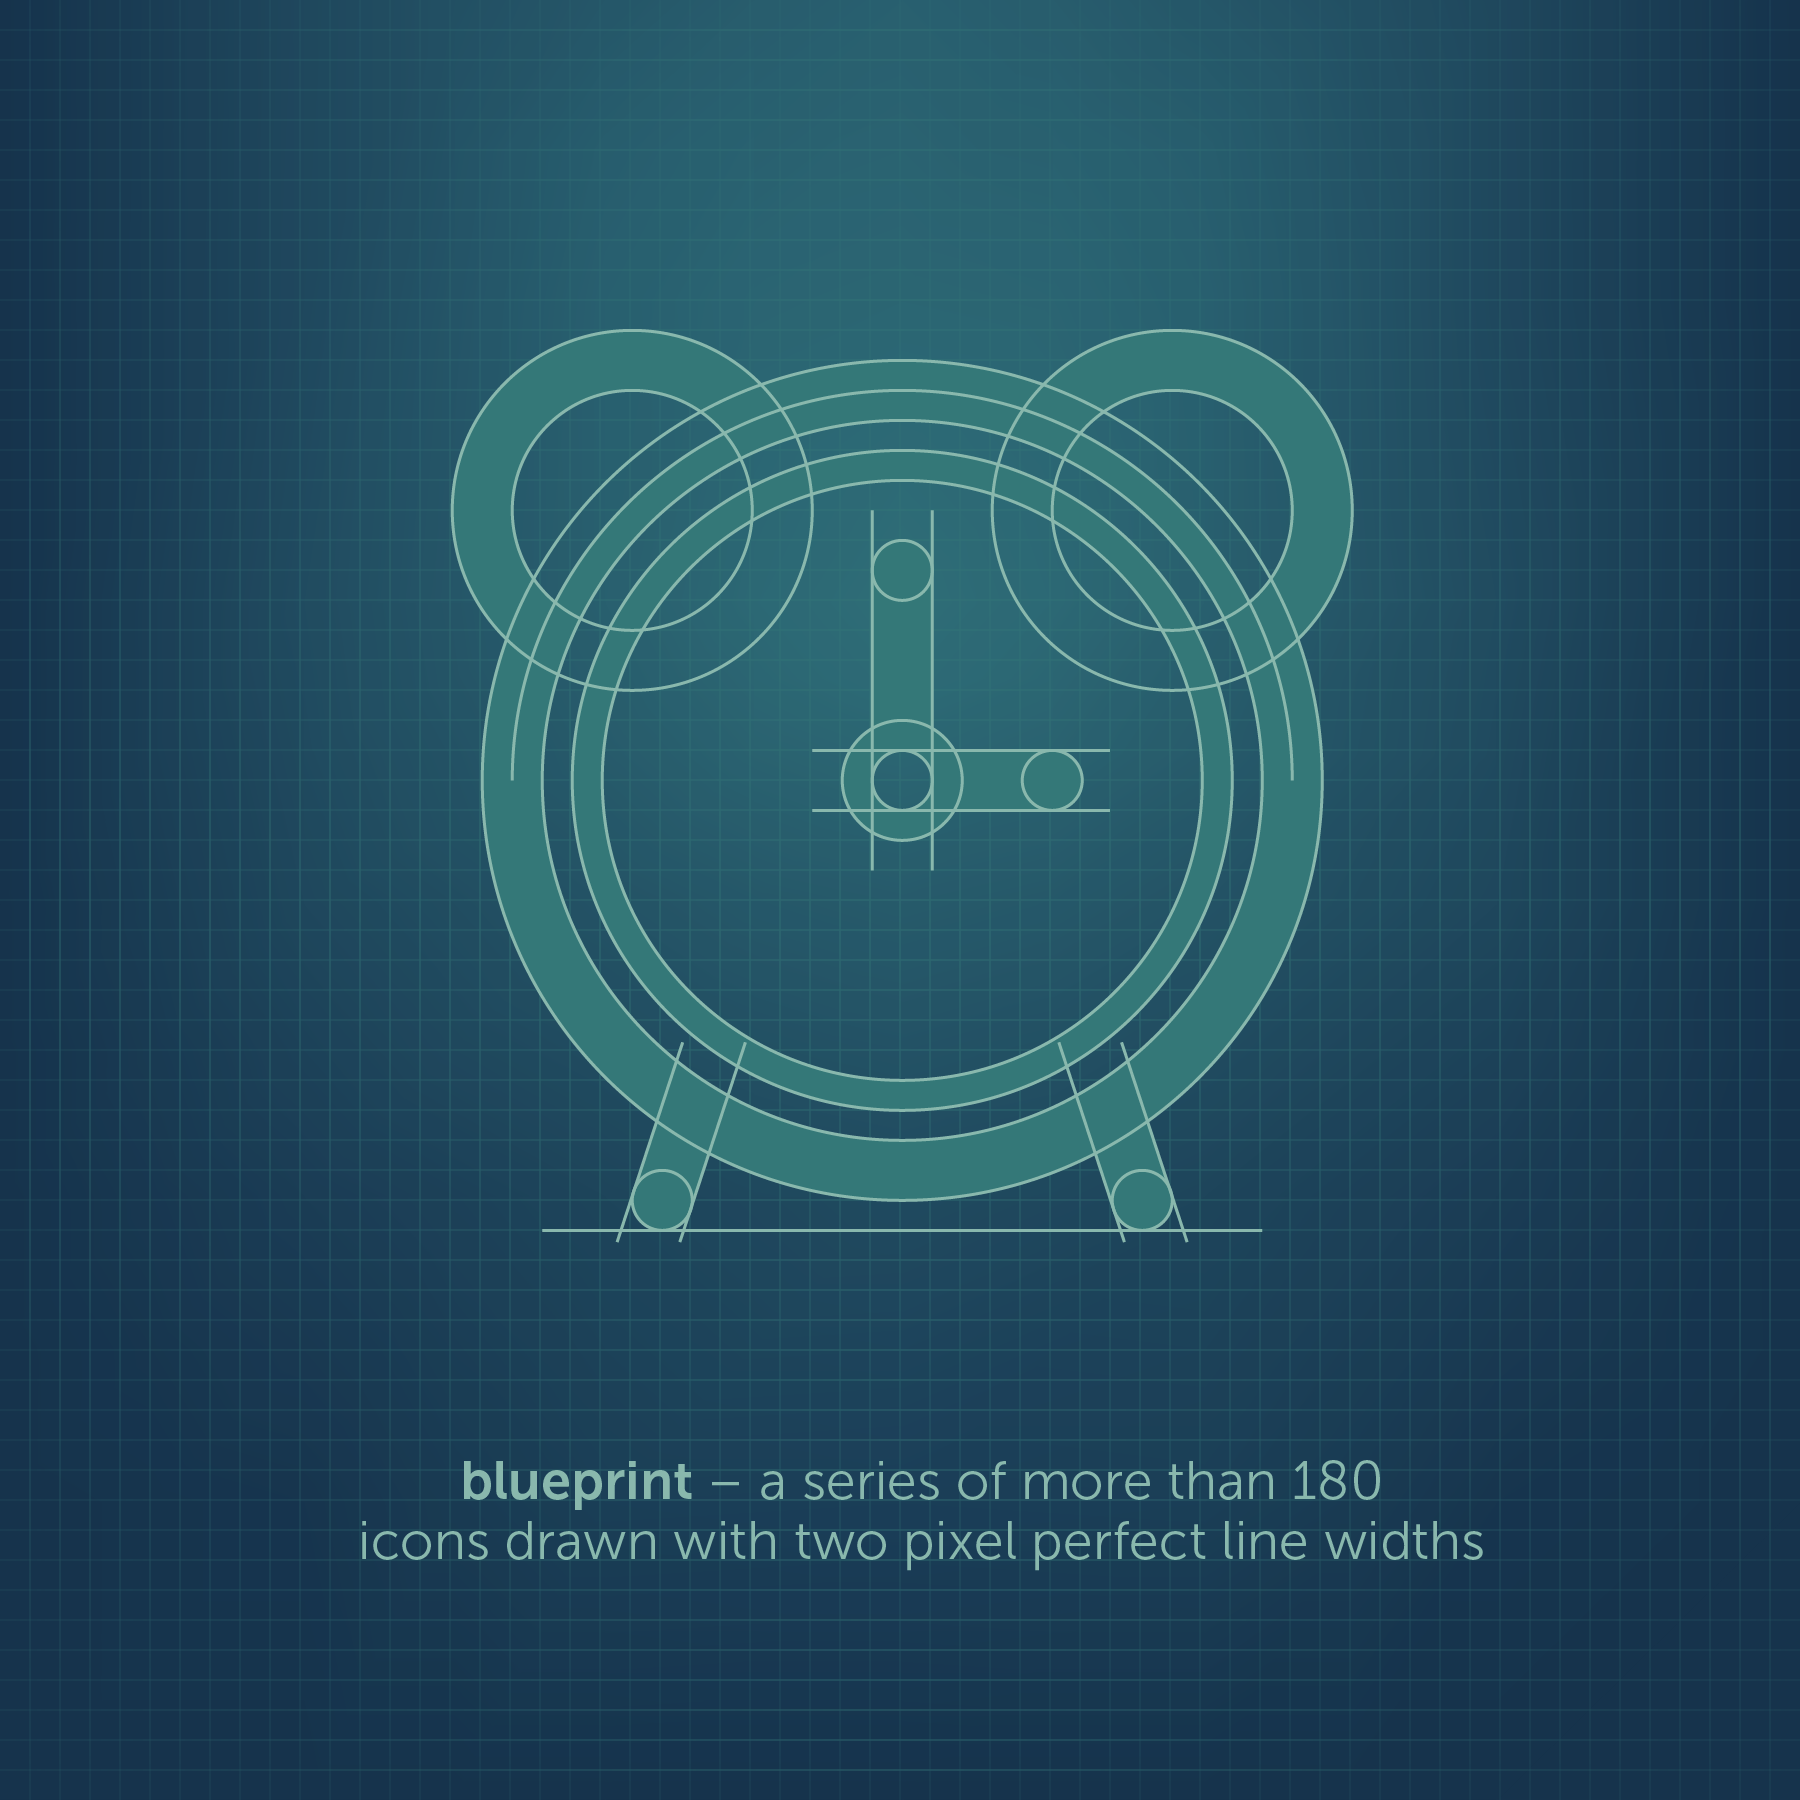 Blueprint a series of free icons from to icon on behance malvernweather Image collections